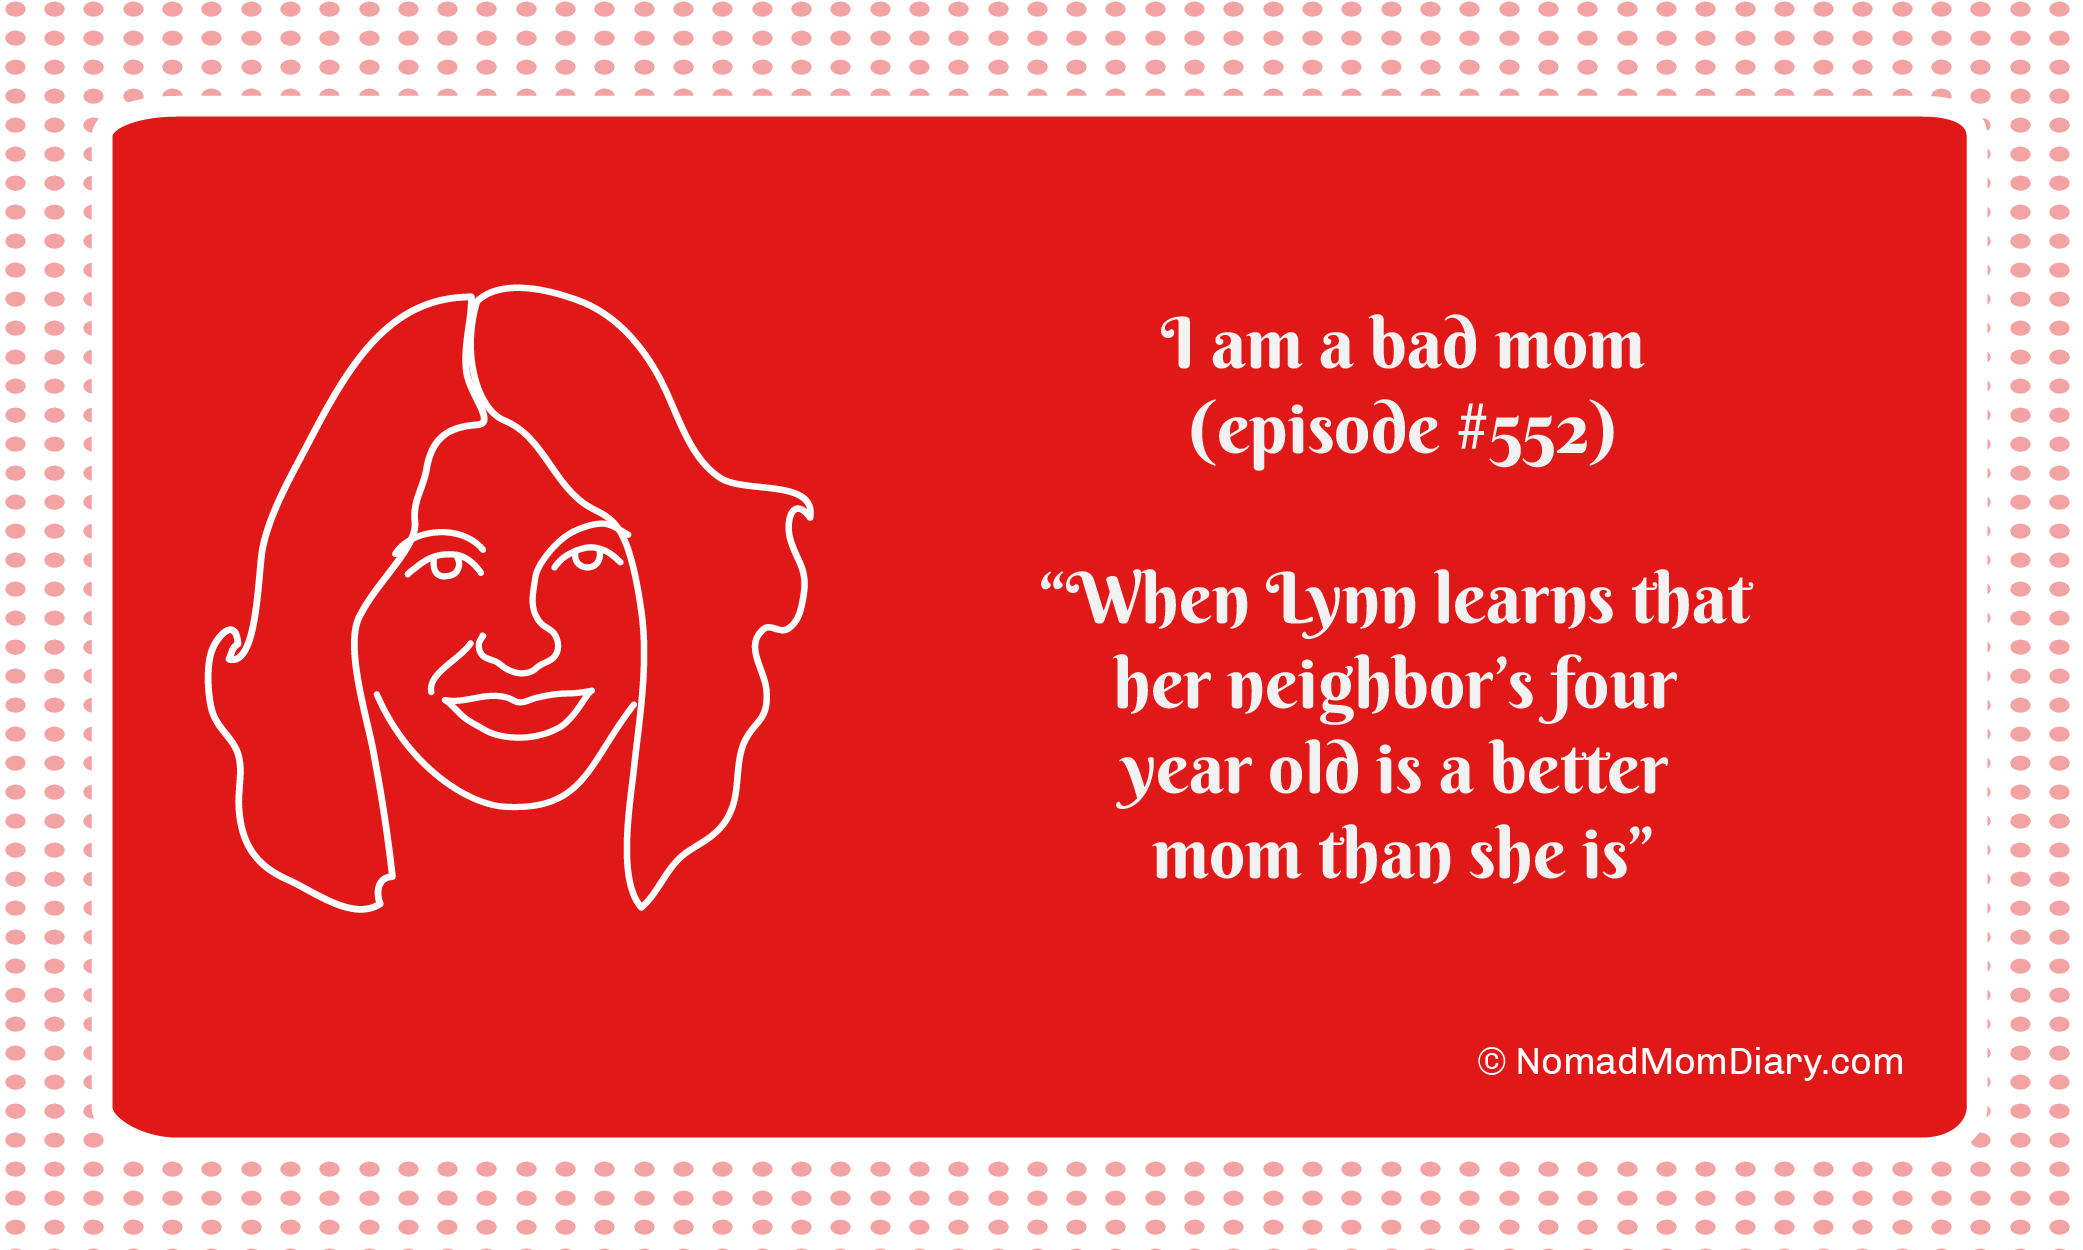 """I am a bad mom, episode 552. """"When Lynn learns that her neighbor's four year old is a better mom than she is"""""""